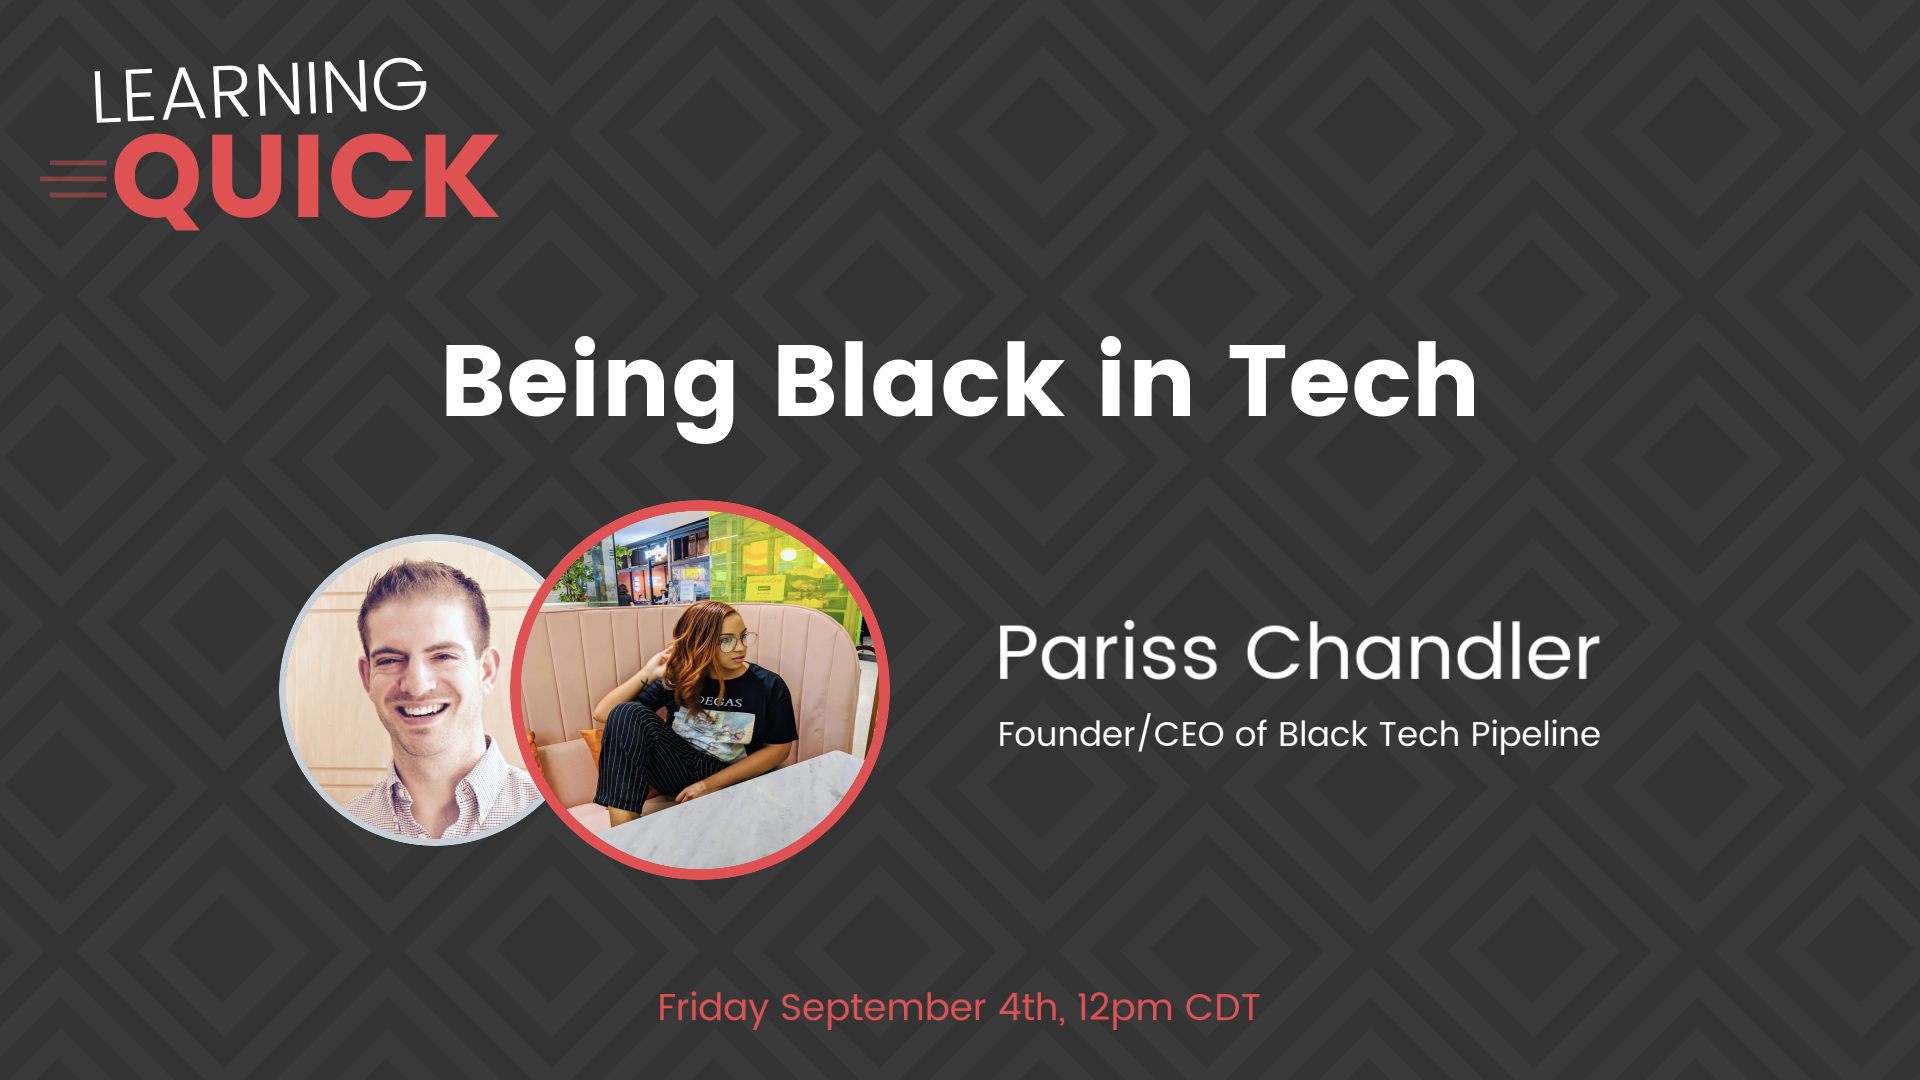 Being Black in Tech With Pariss Chandler